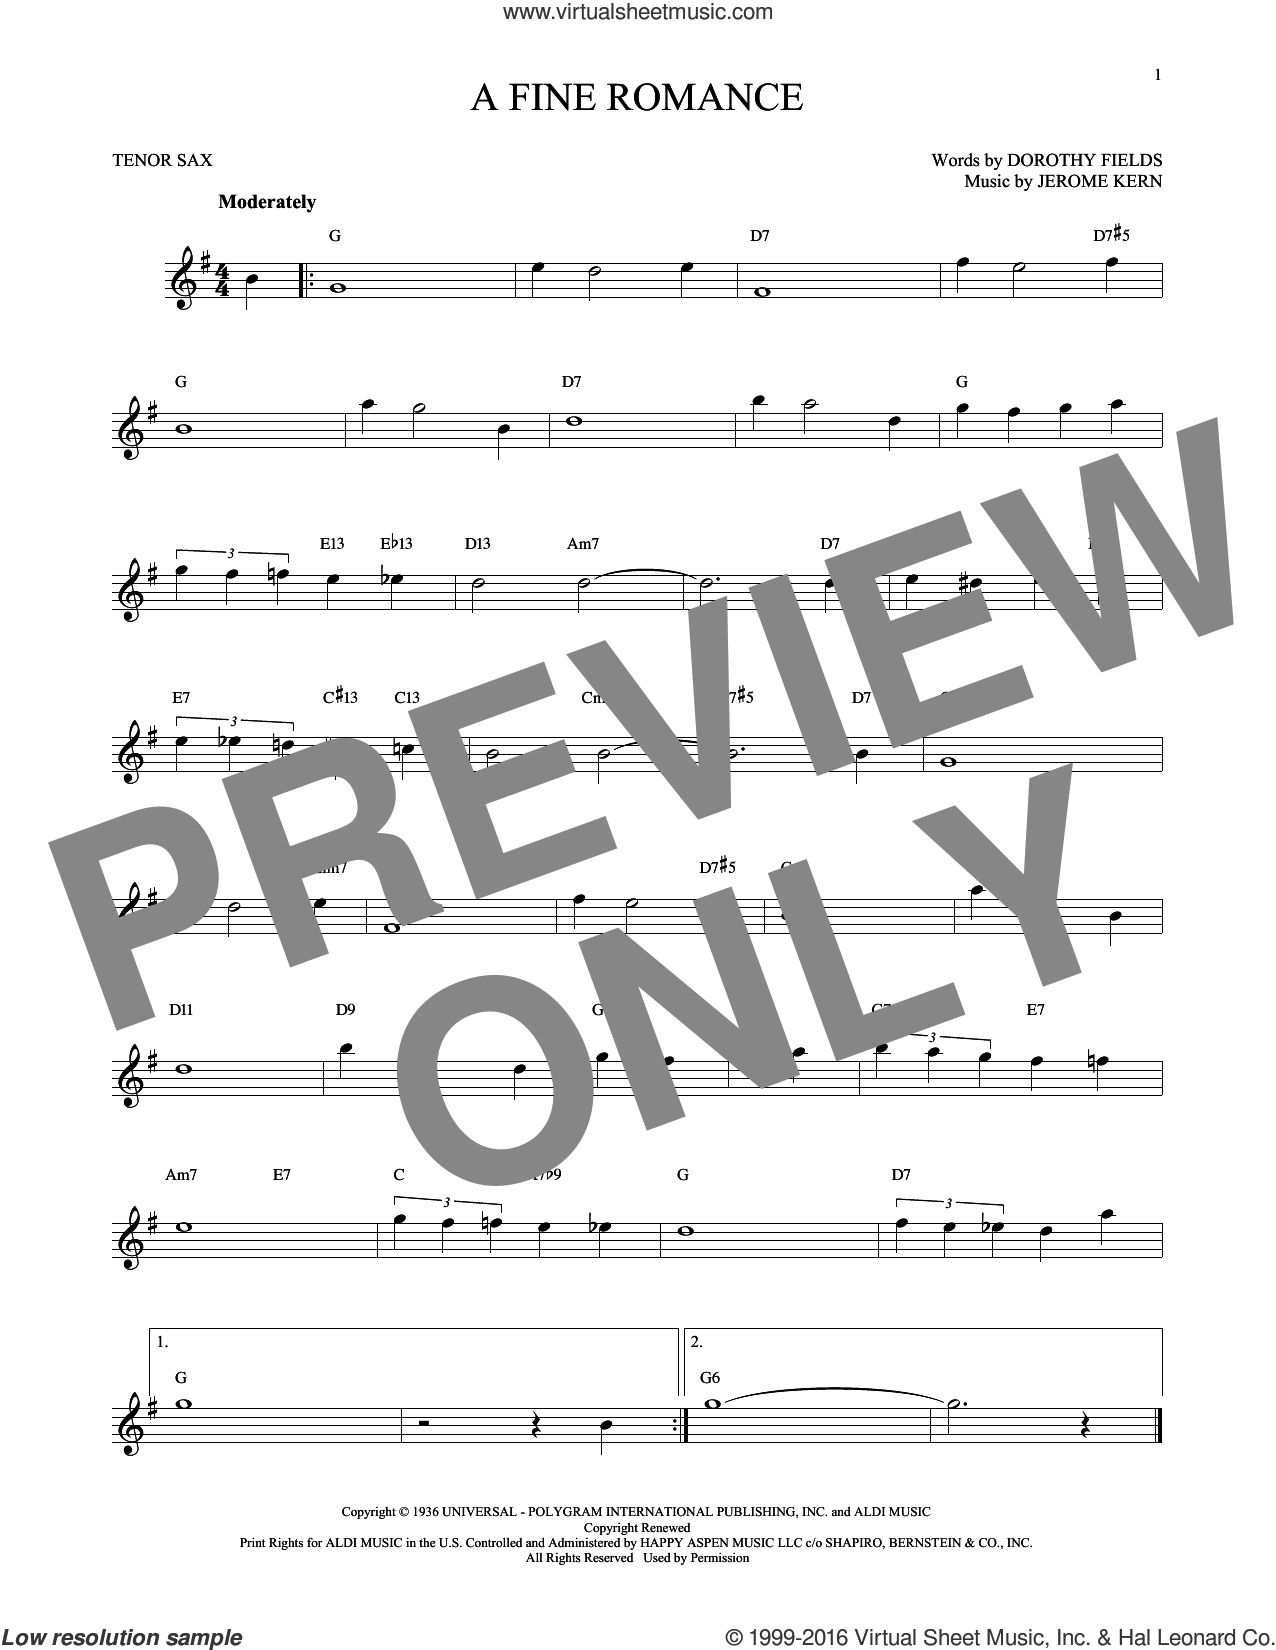 A Fine Romance sheet music for tenor saxophone solo by Jerome Kern and Dorothy Fields, intermediate skill level